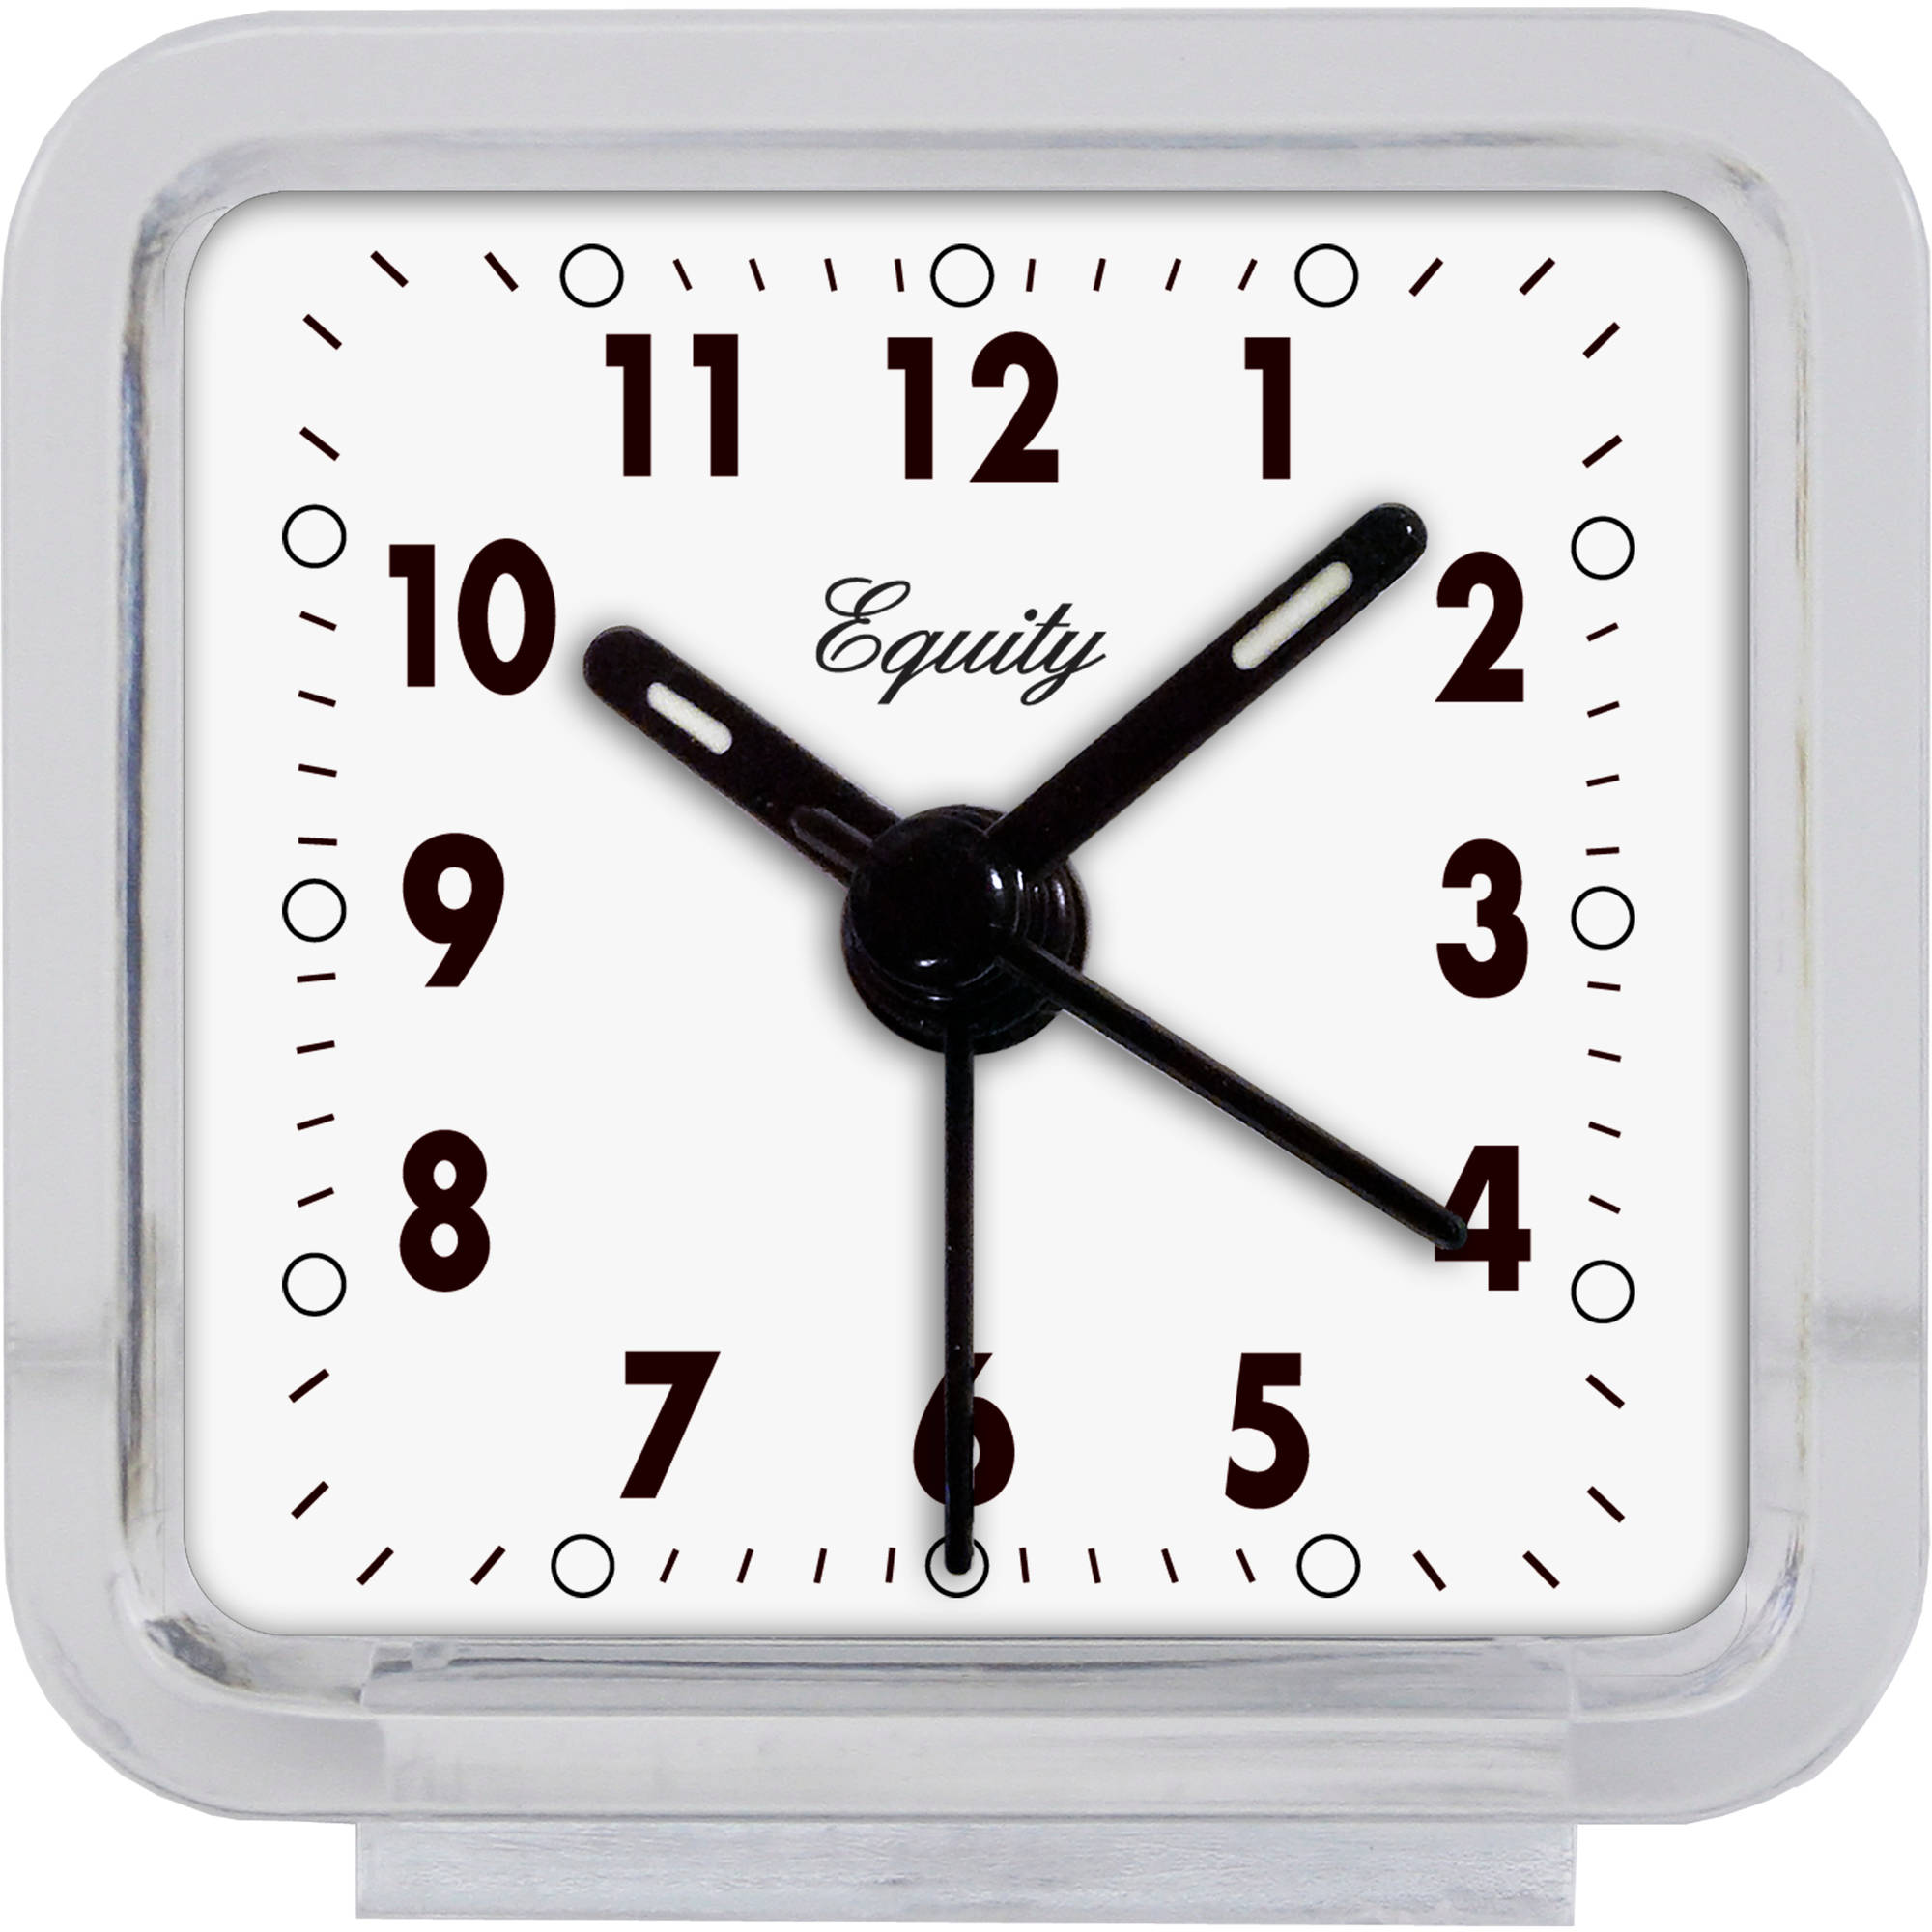 La Crosse Technology Equity Clear Analog Alarm Clock